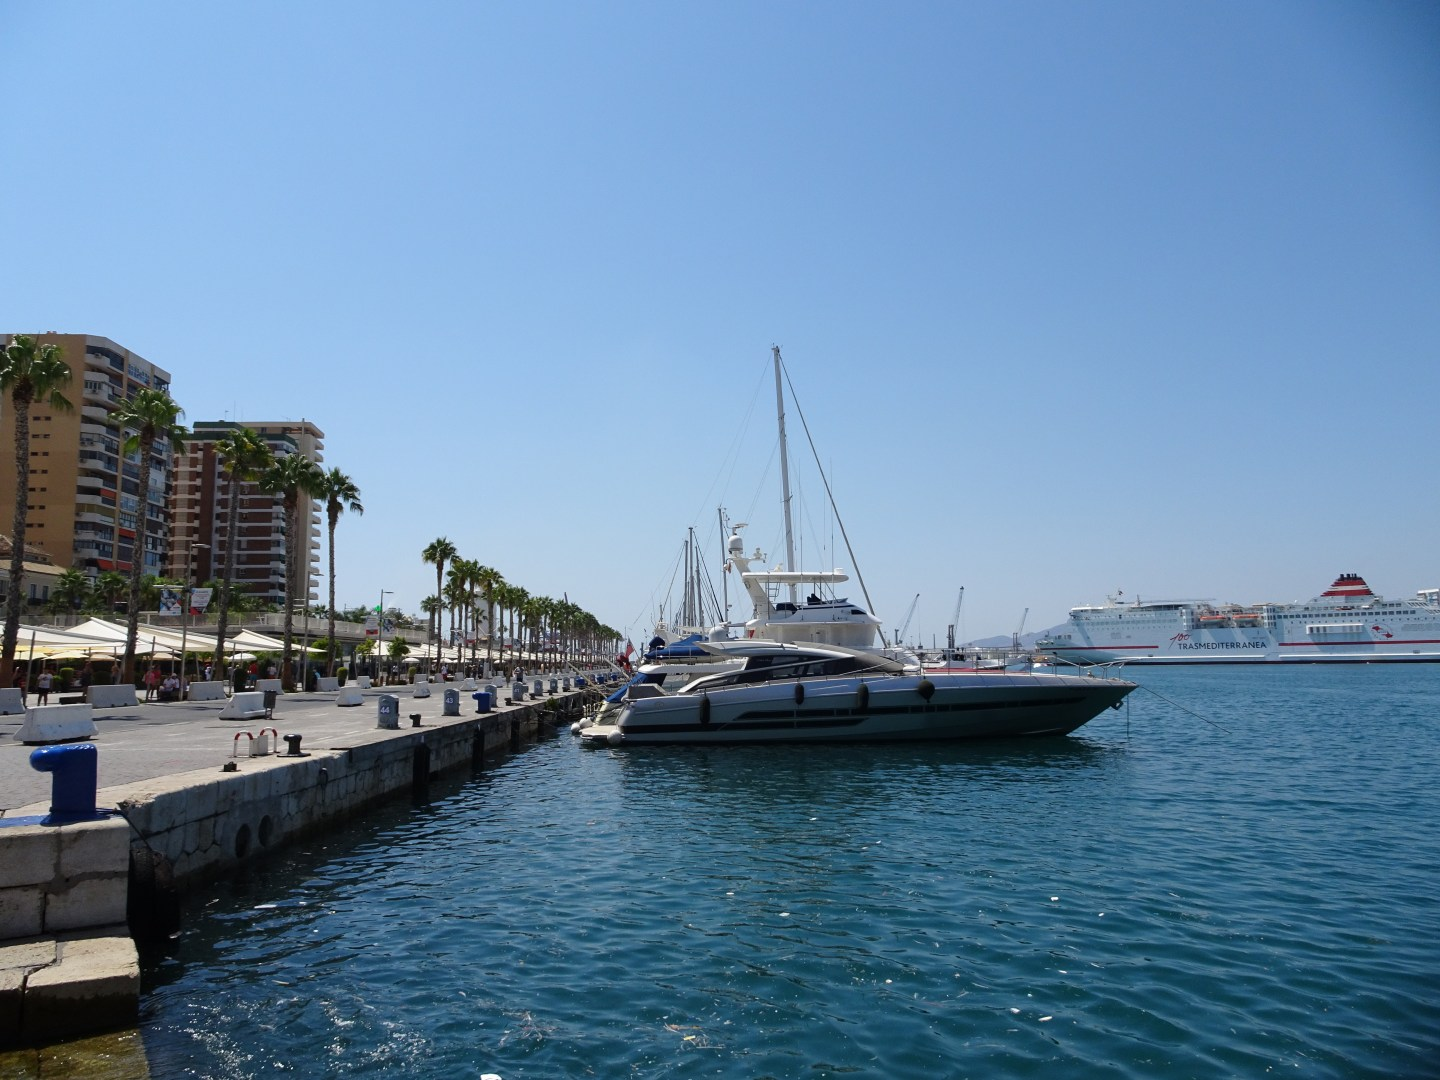 The modern port area in Malaga